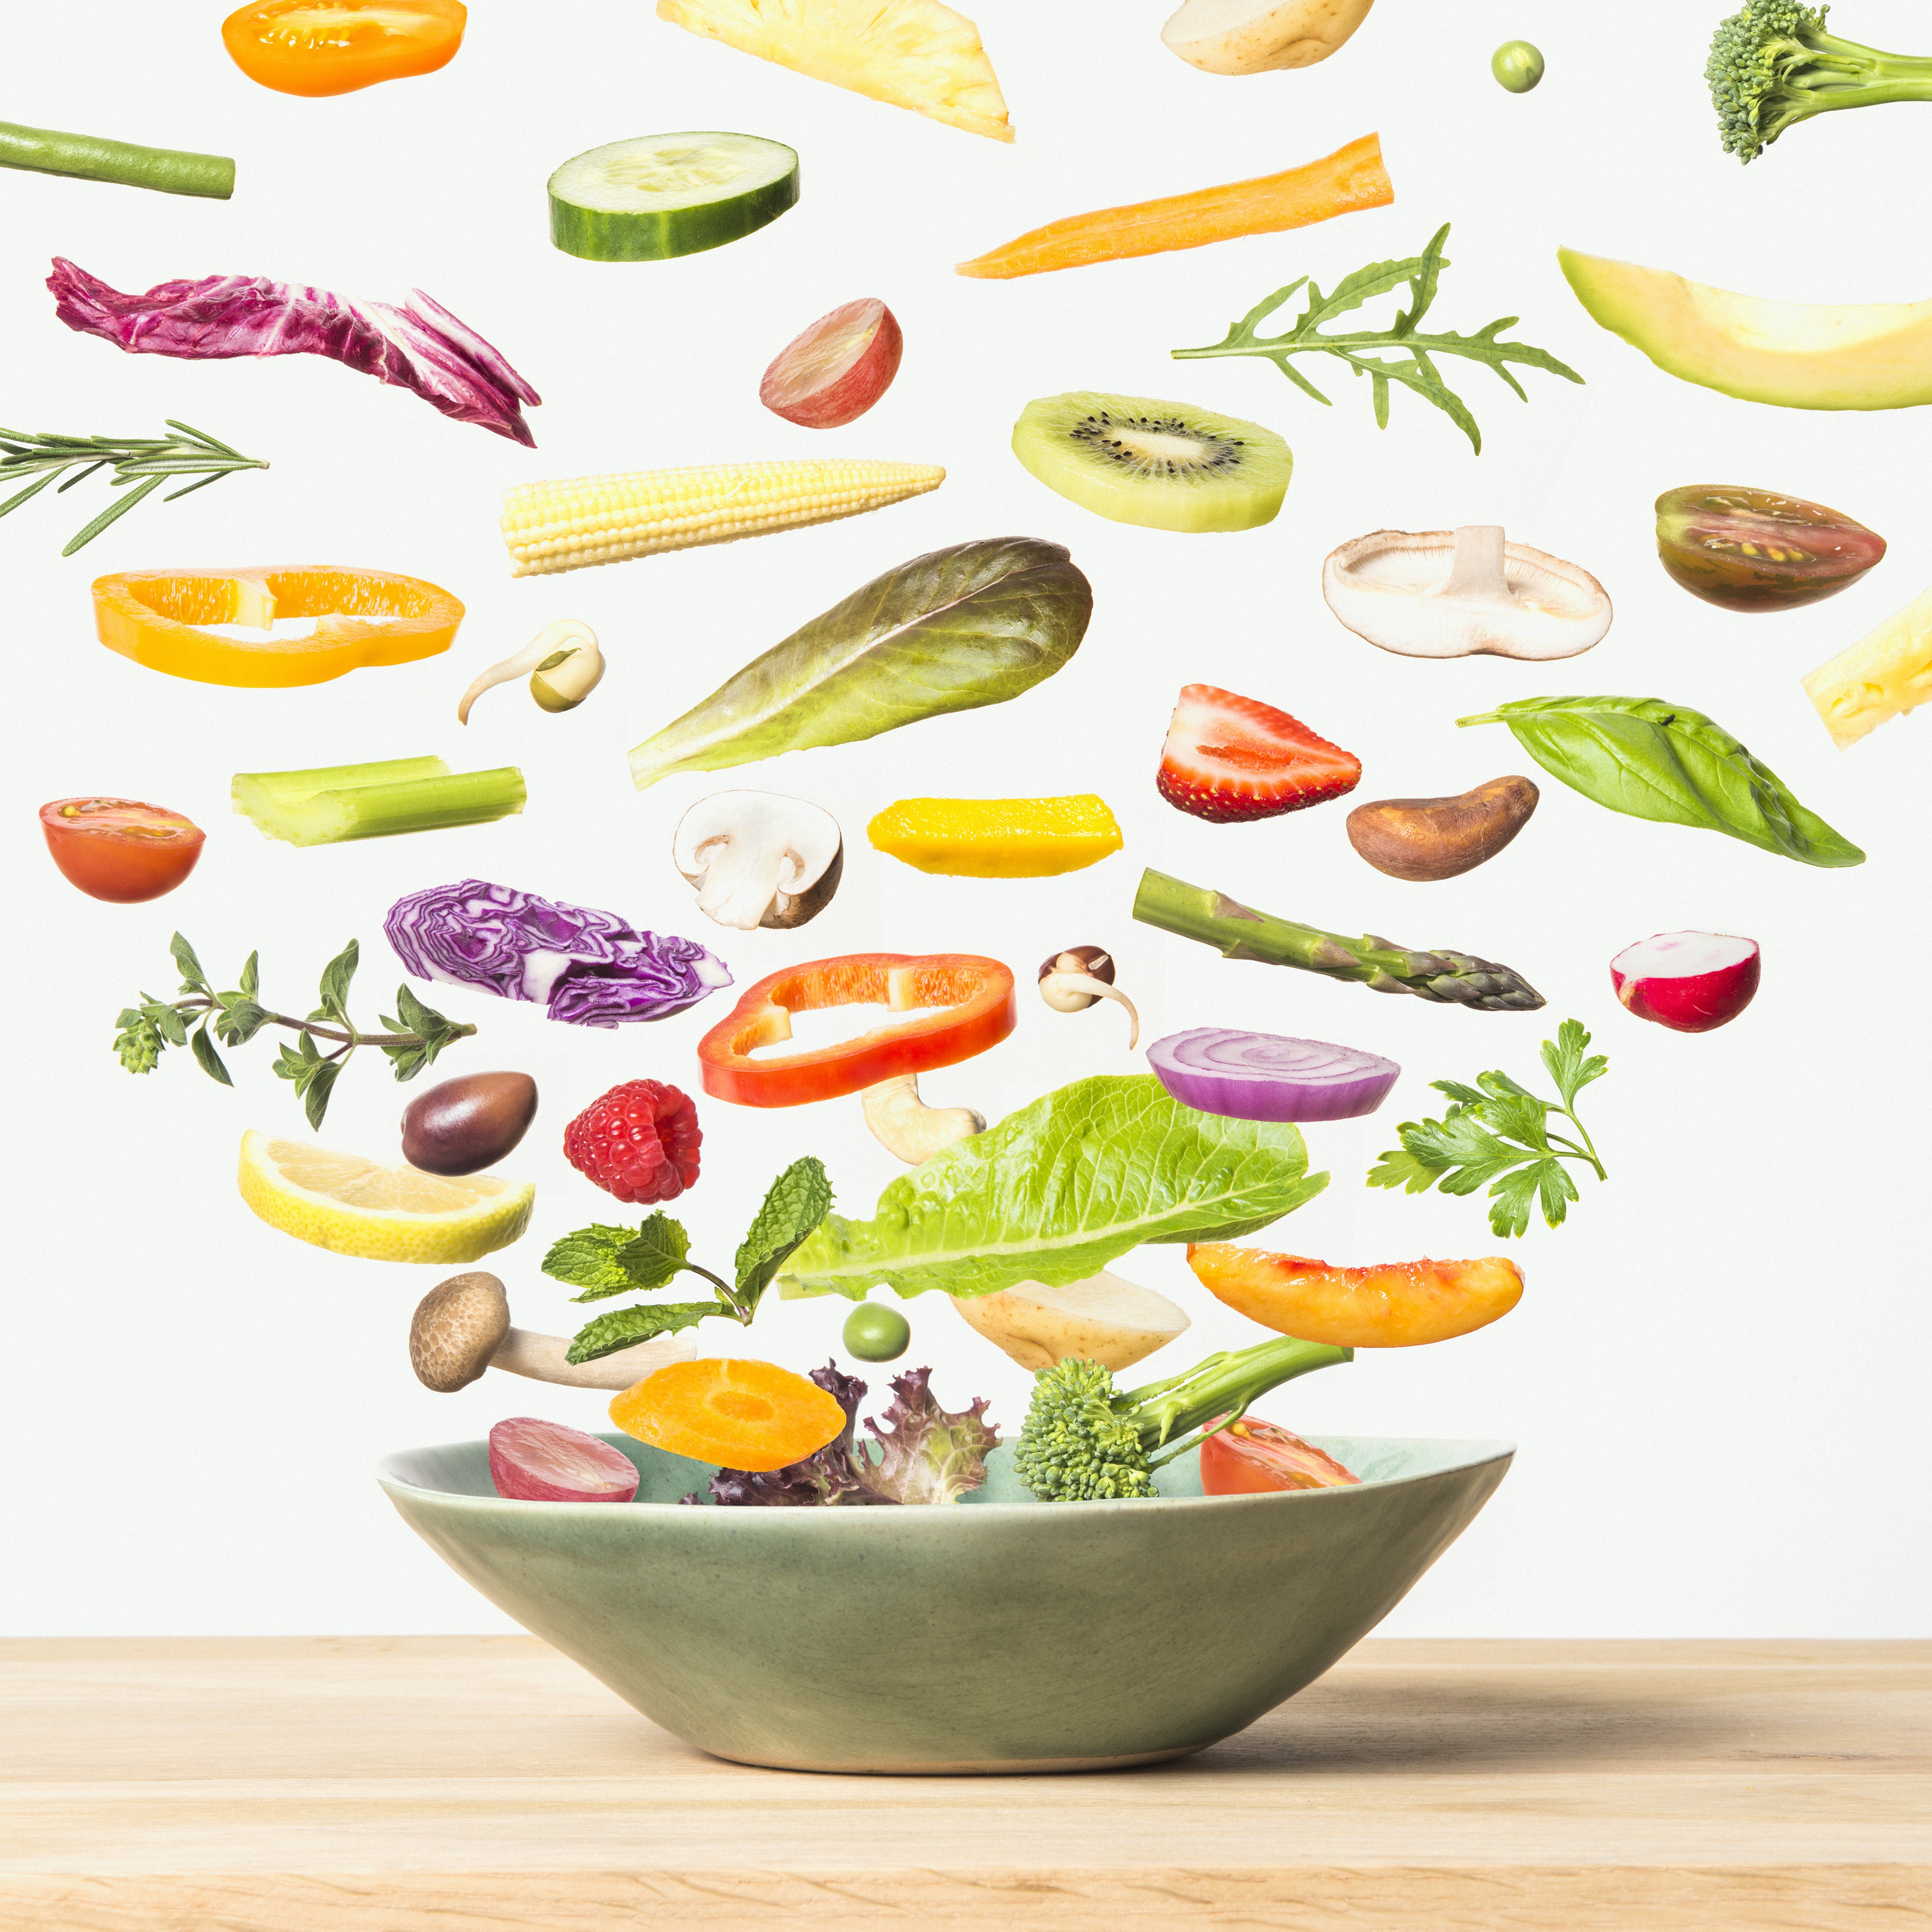 Individual parts of a salad (lettuce, olives, peppers, asparagus, etc) flying out of a salad bowl.